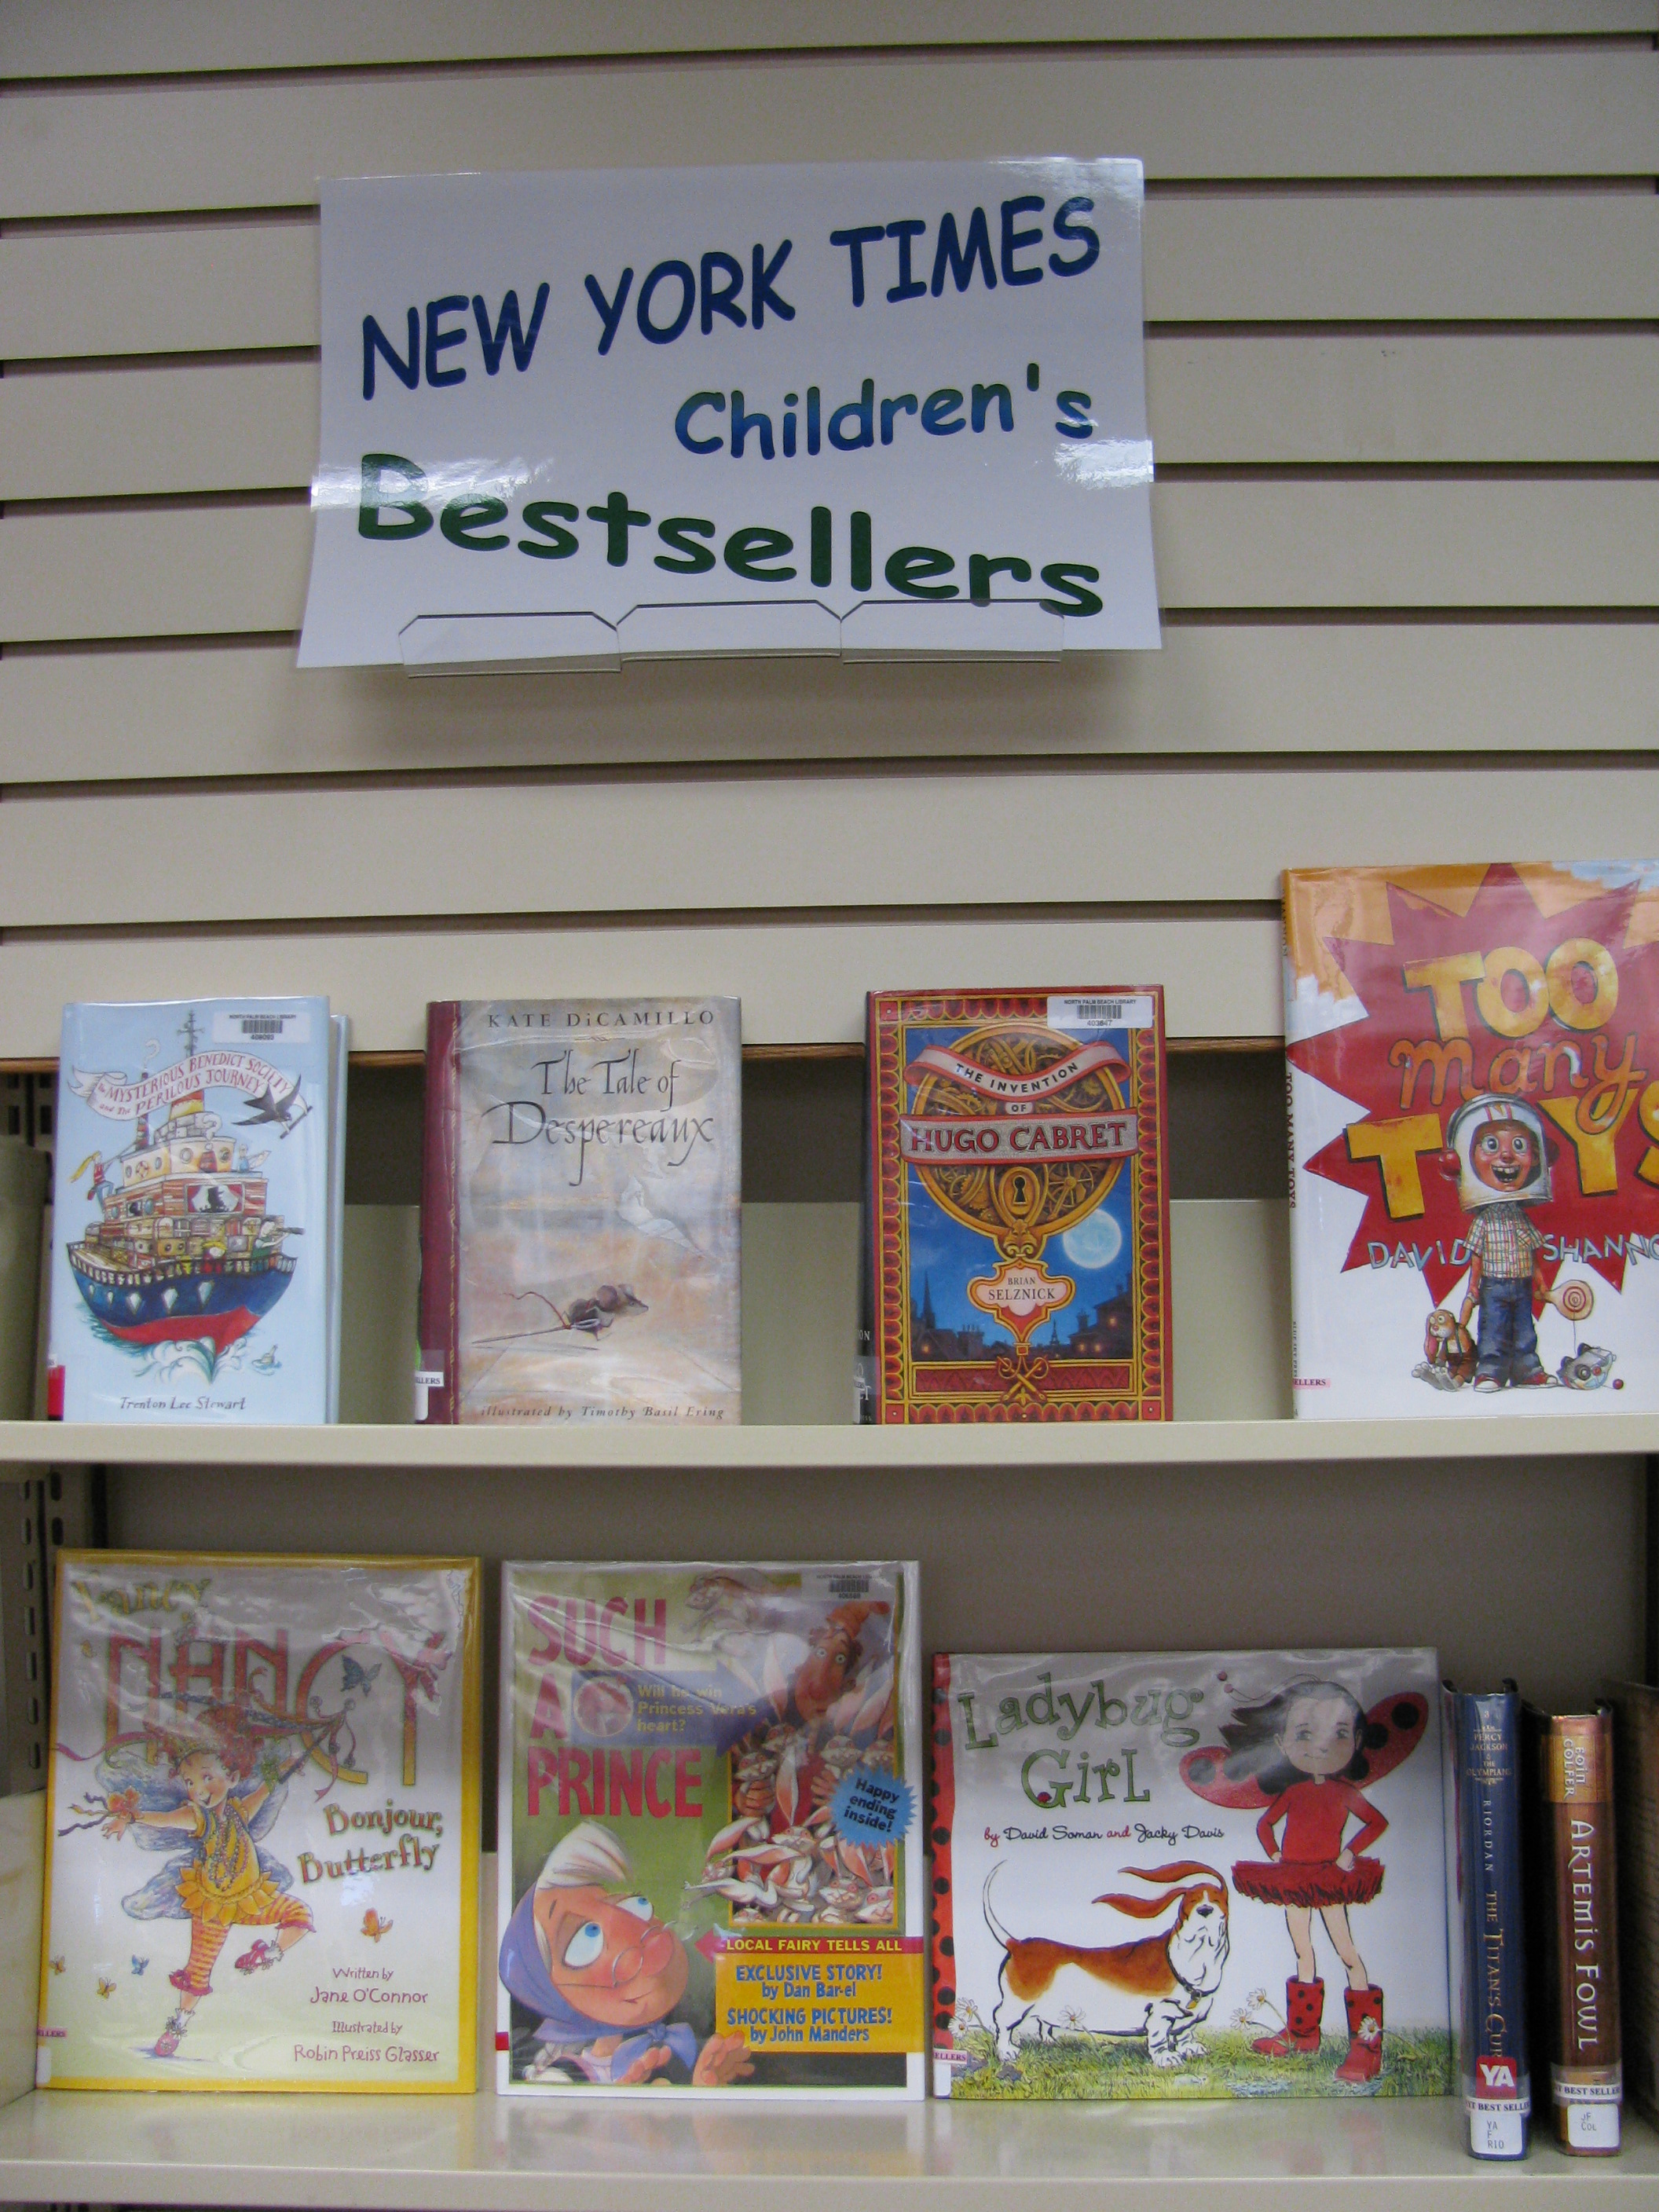 Shelf of New York Times children's bestsellers books